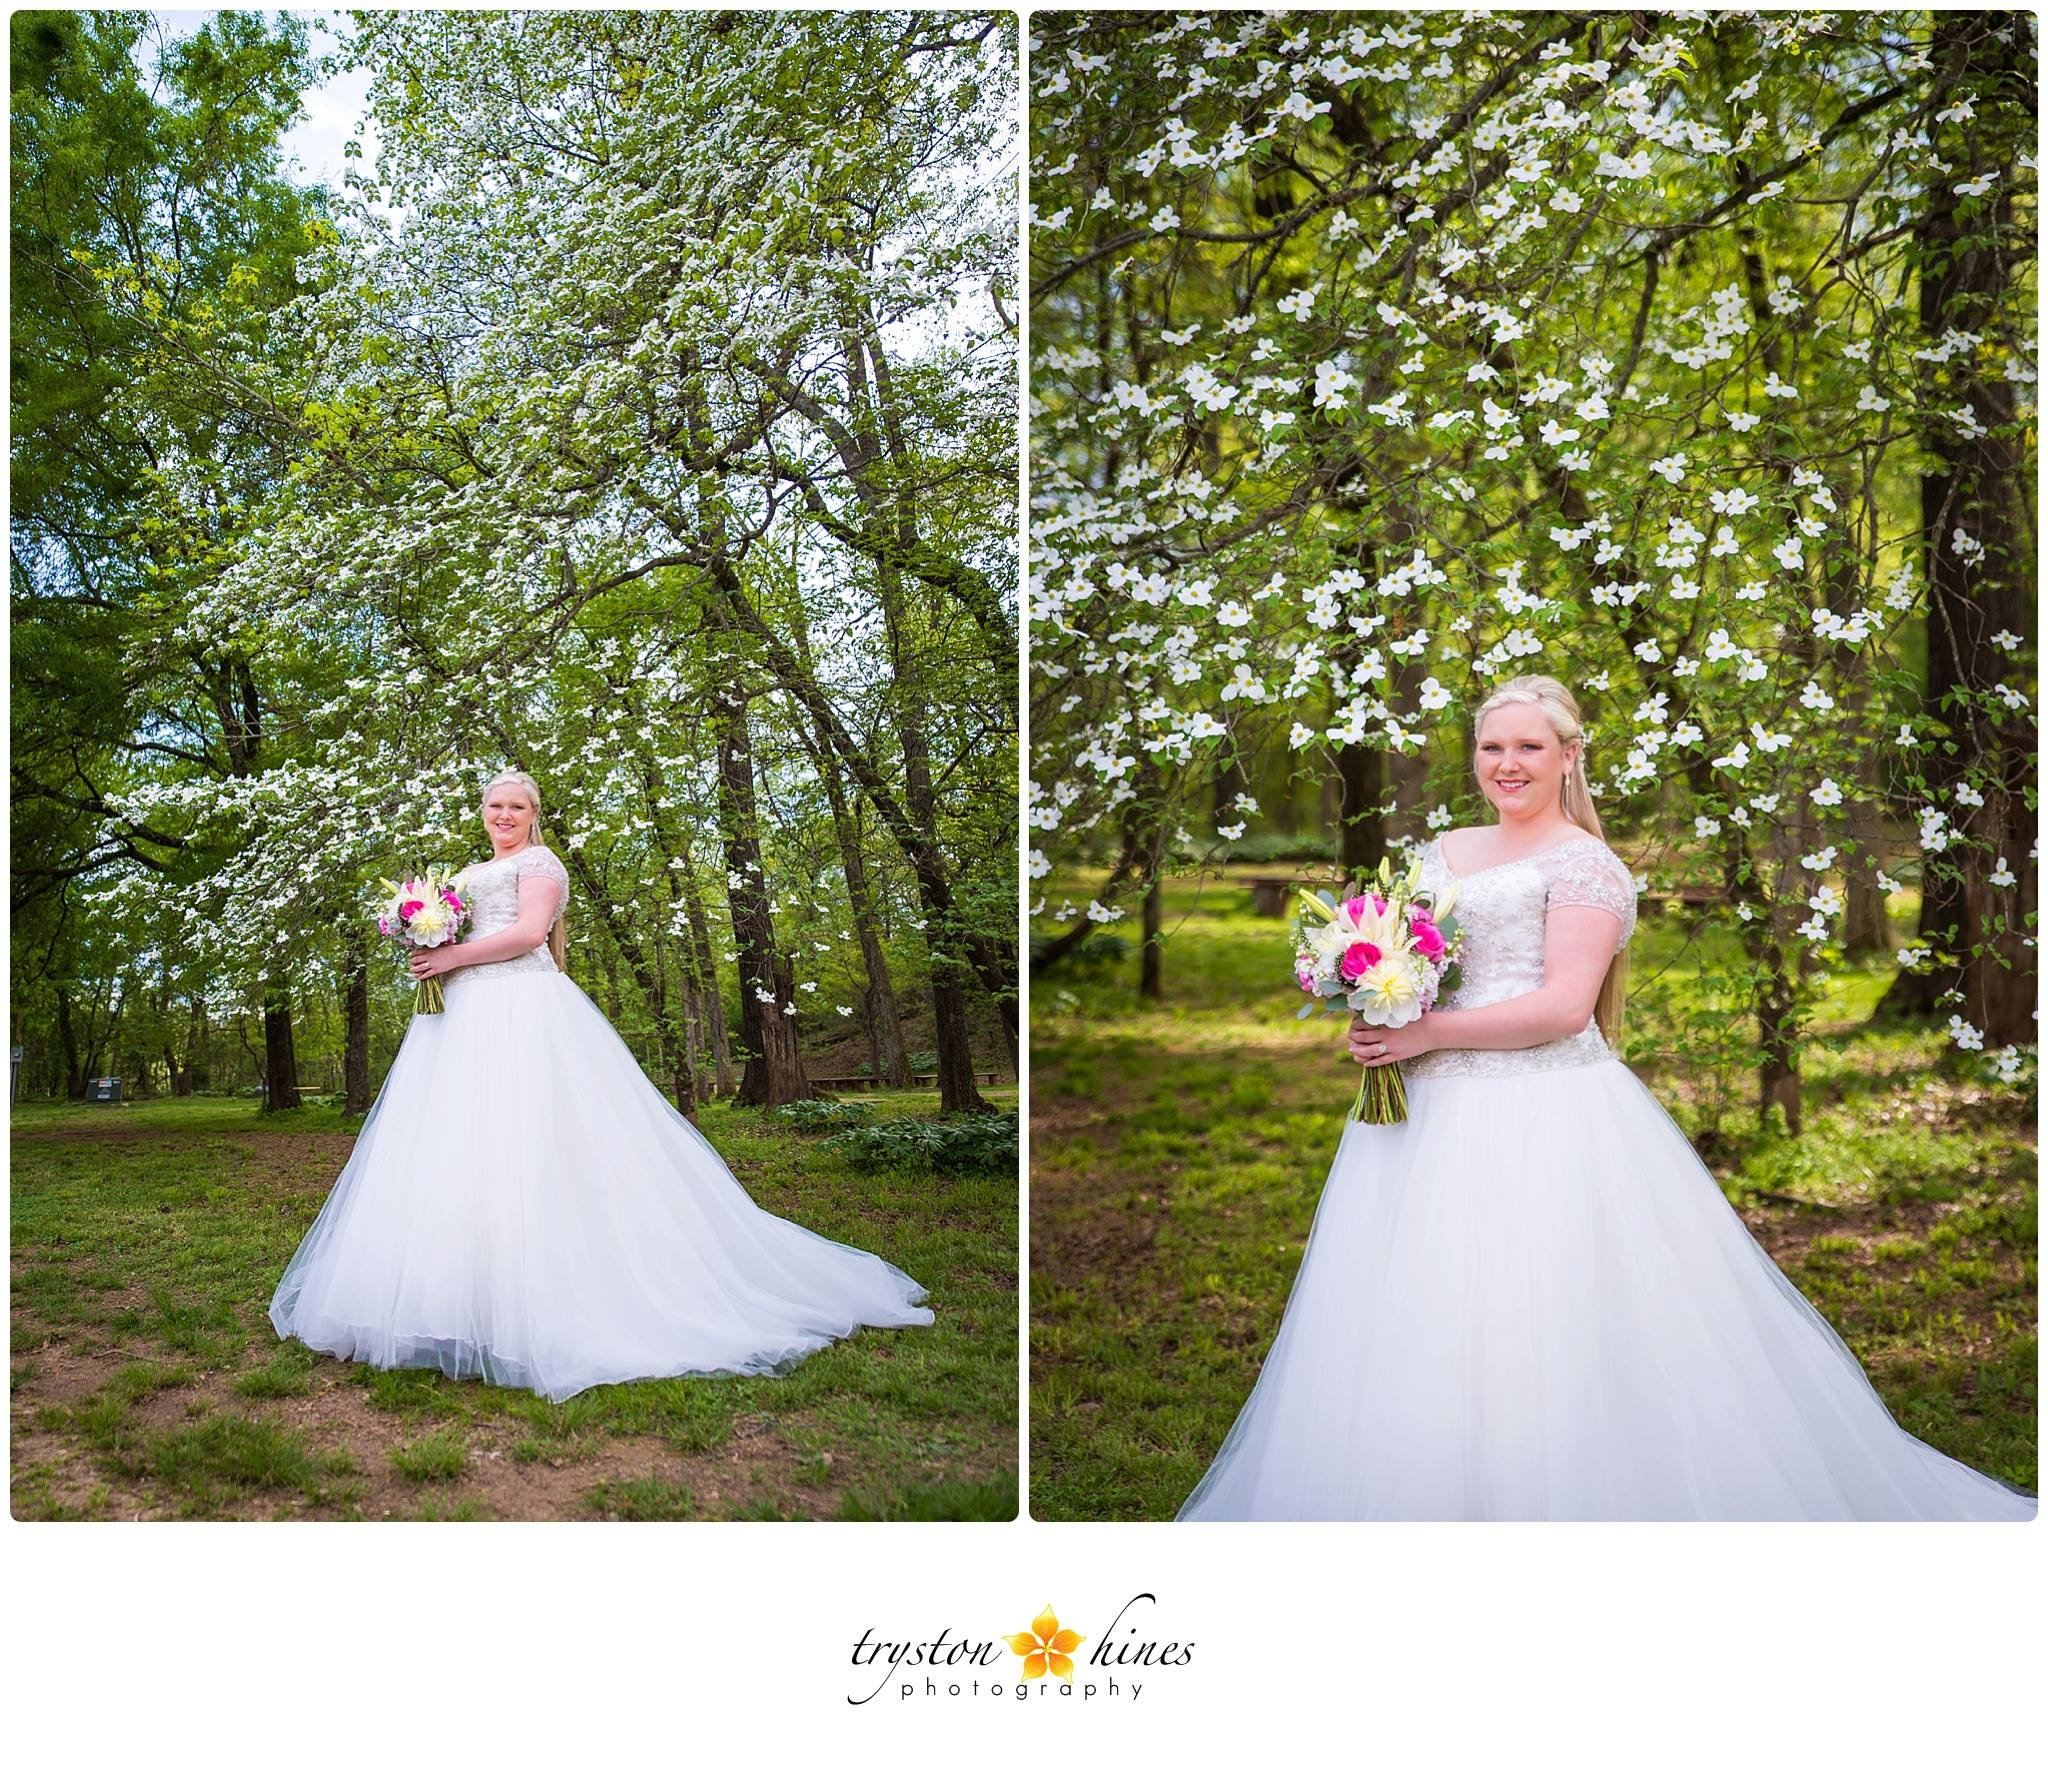 Tryston Hines Photography .  Amber 's springtime bridals were stunning!